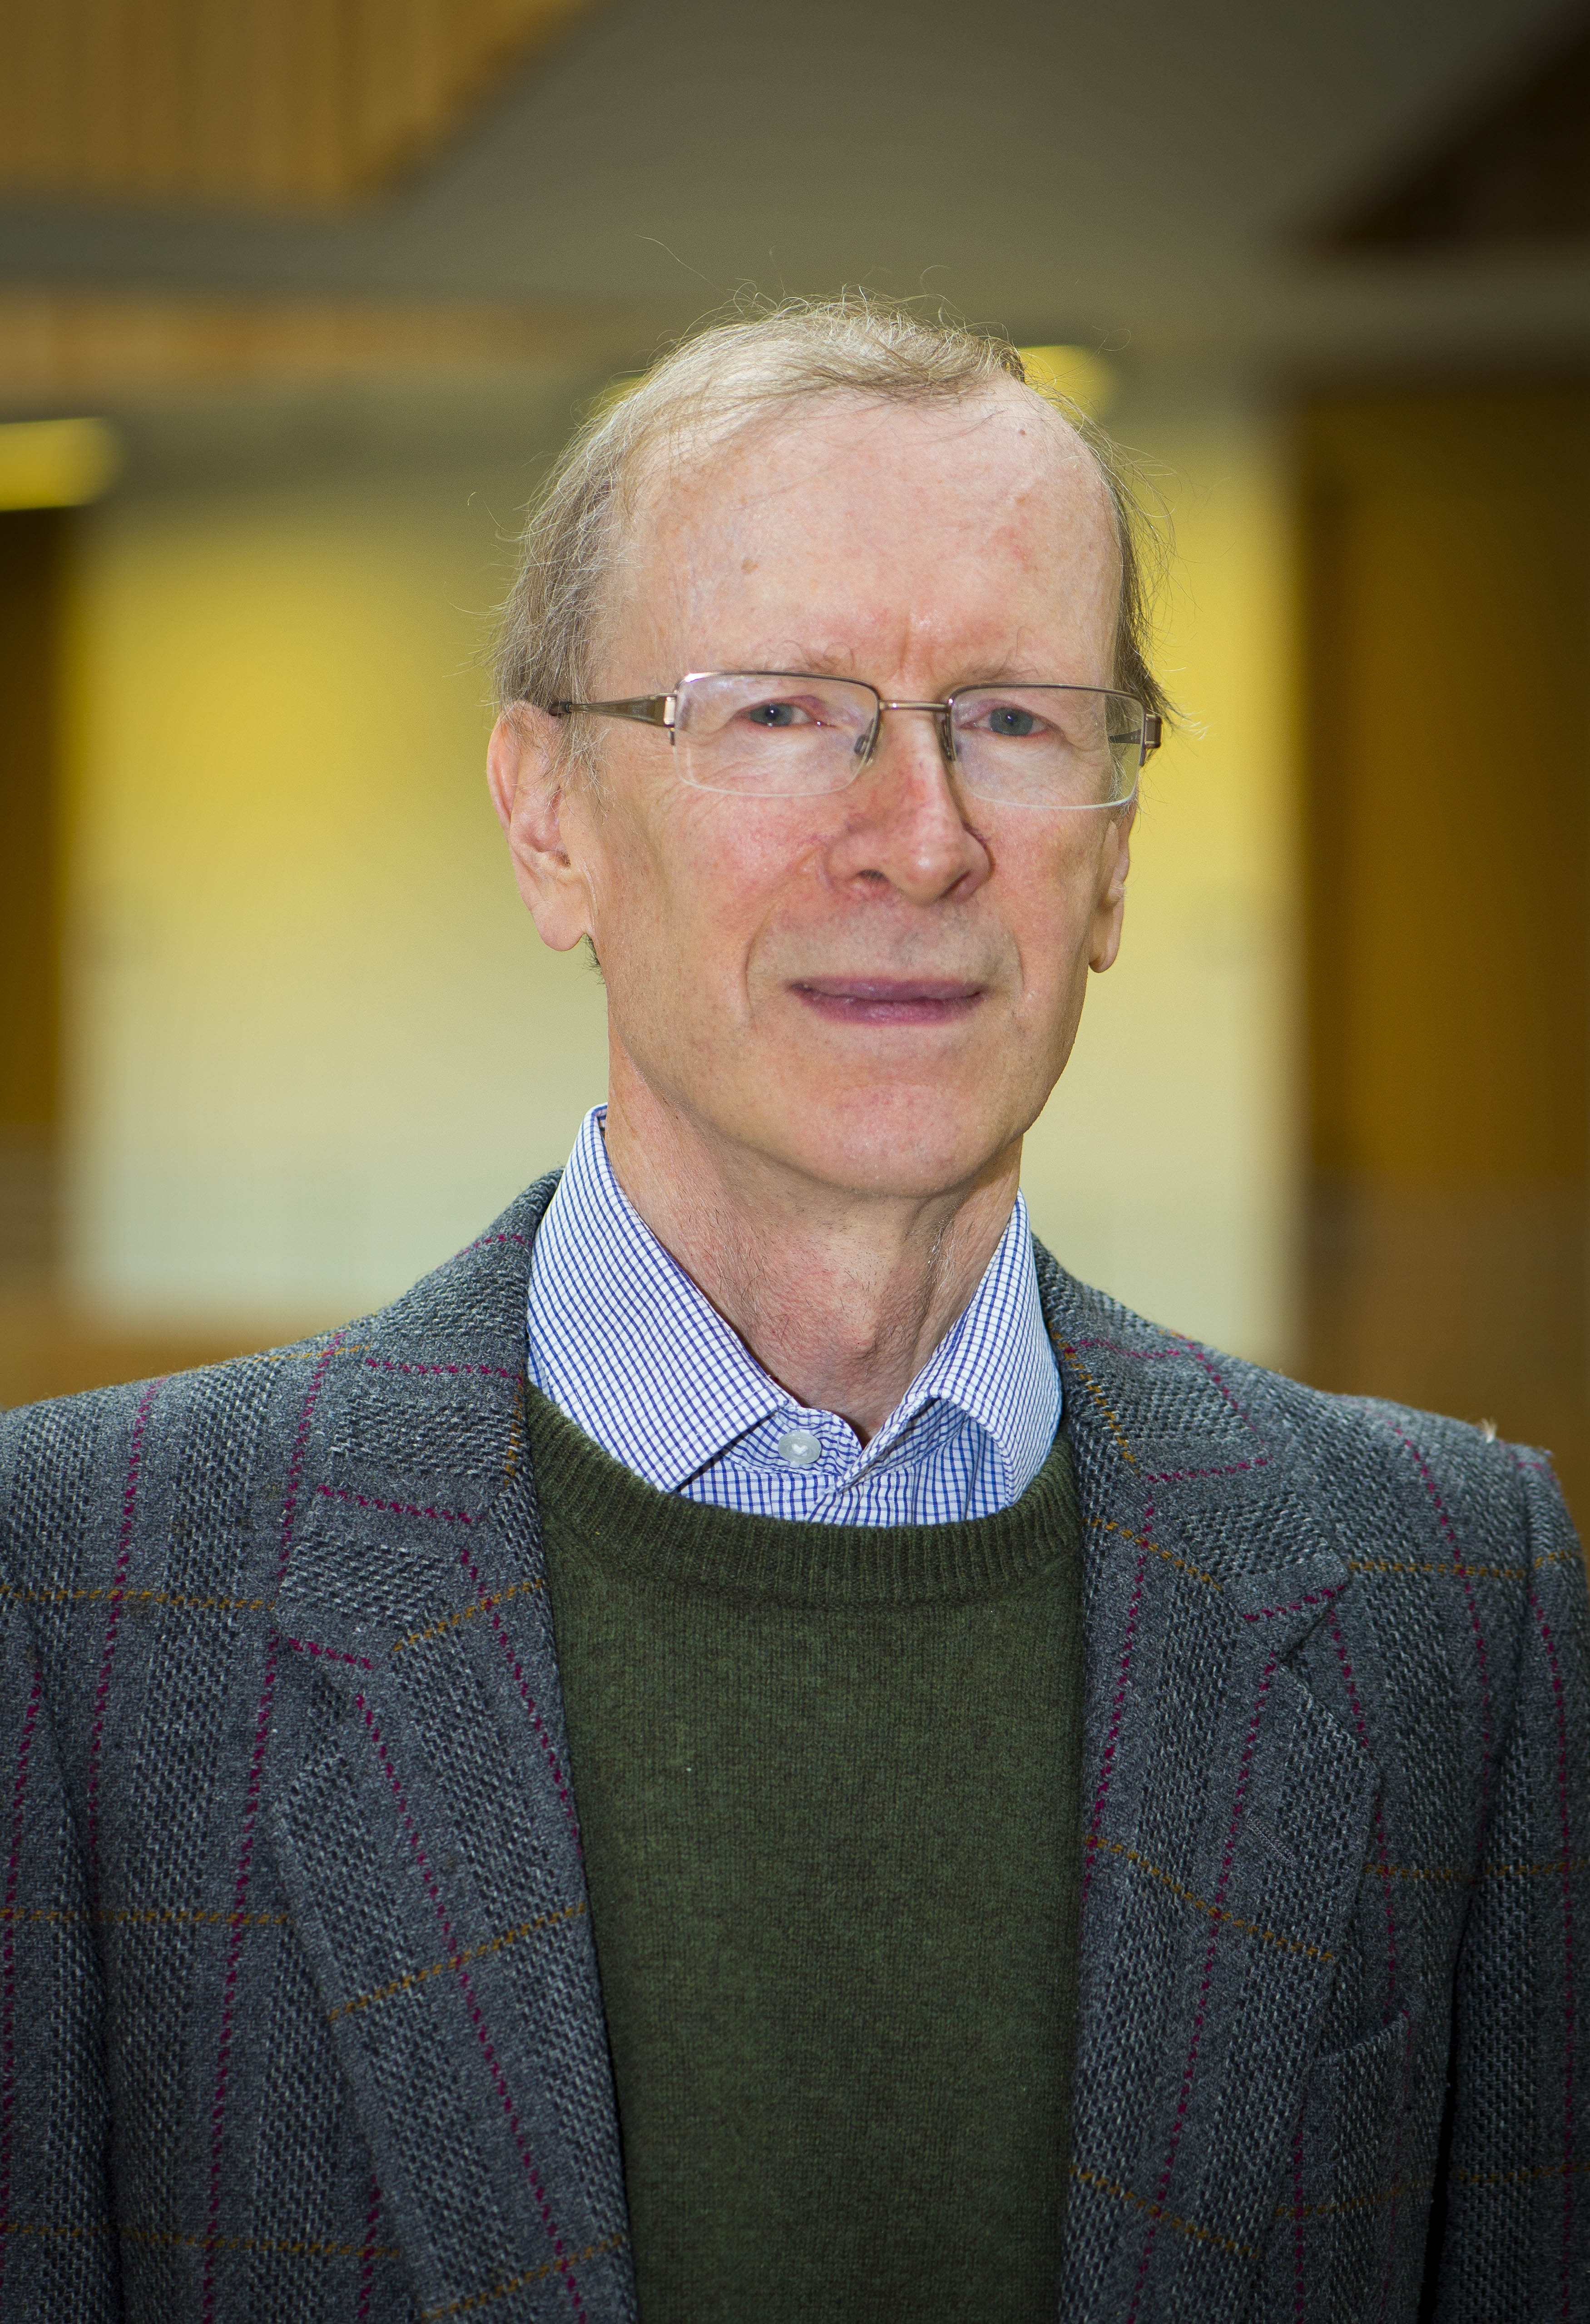 An undated handout image provided by the Mathematical Institute at the University of Oxford on March 15, 2016, shows British mathematician Sir Andrew Wiles